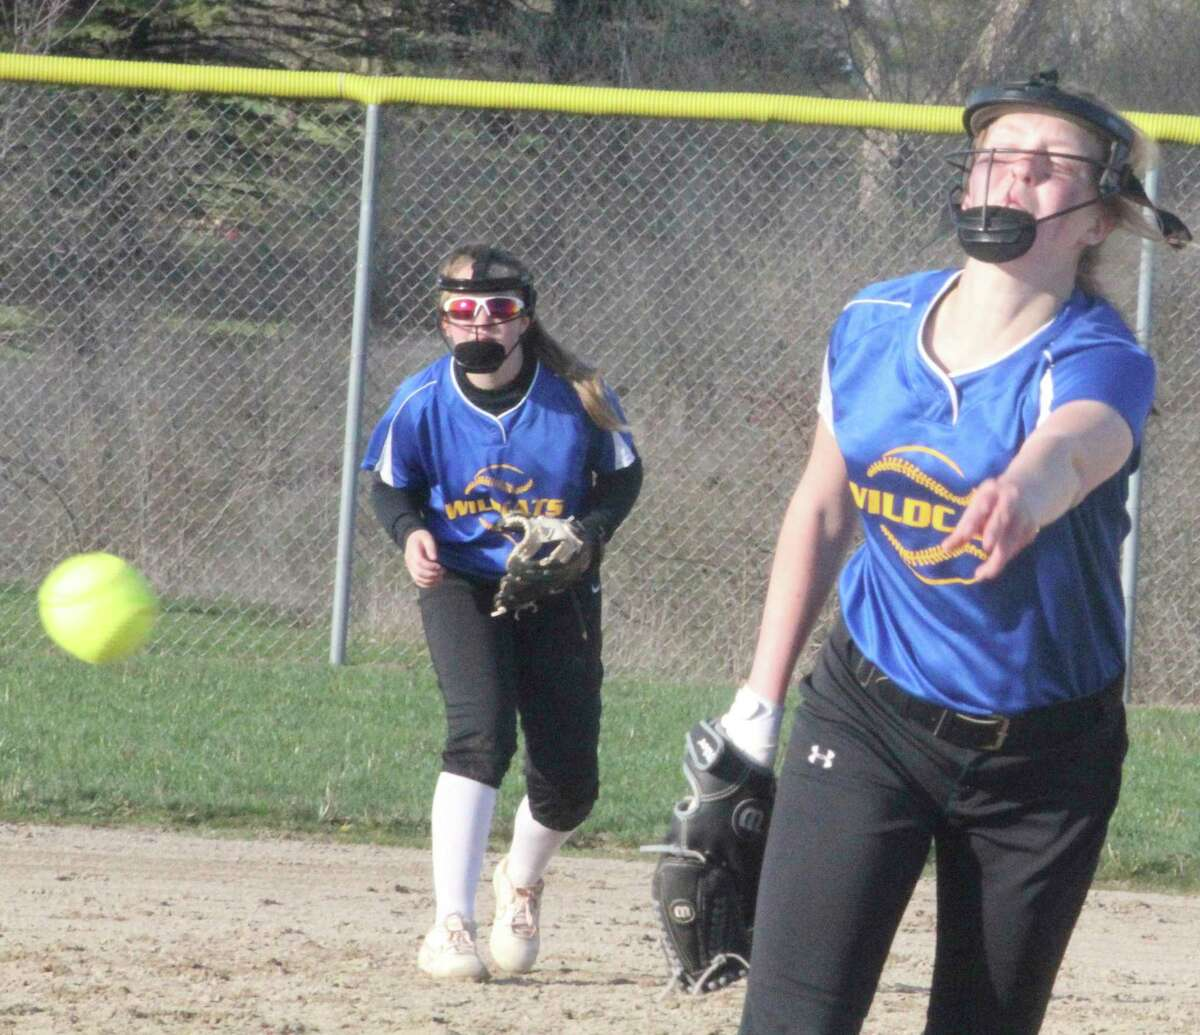 Evart's Addy Gray delivers a pitch against Big Rapids earlier this season. (Herald Review photo/John Raffel)